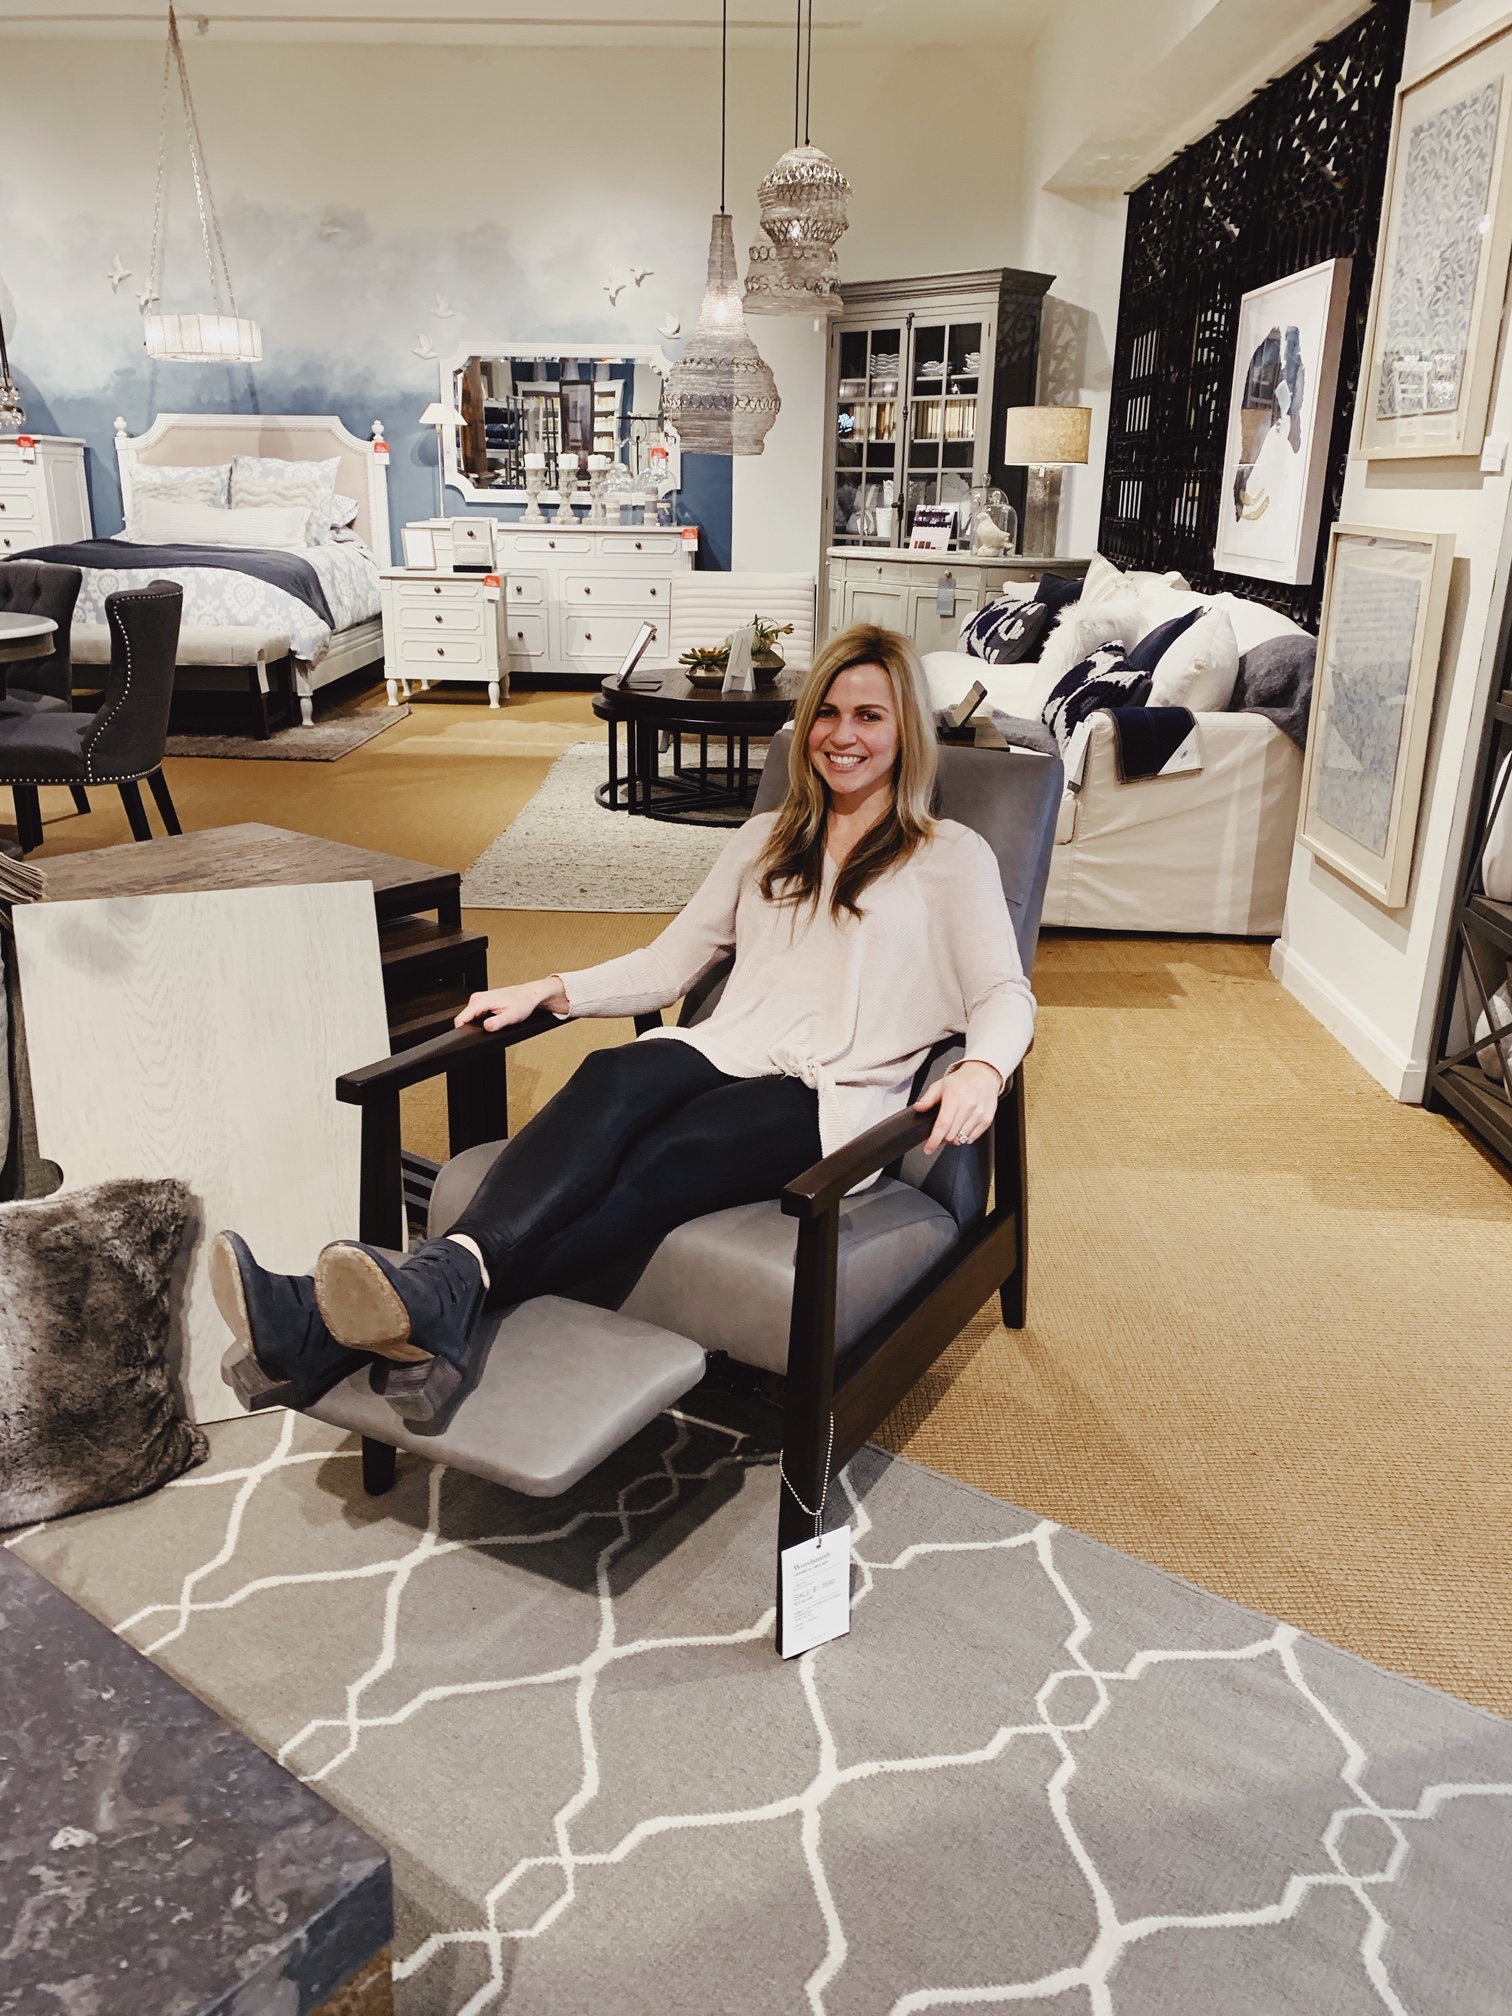 How To Shop For Furniture Like You Mean It. Testing out chairs before making a purchase. How to pick out new furniture for your home.